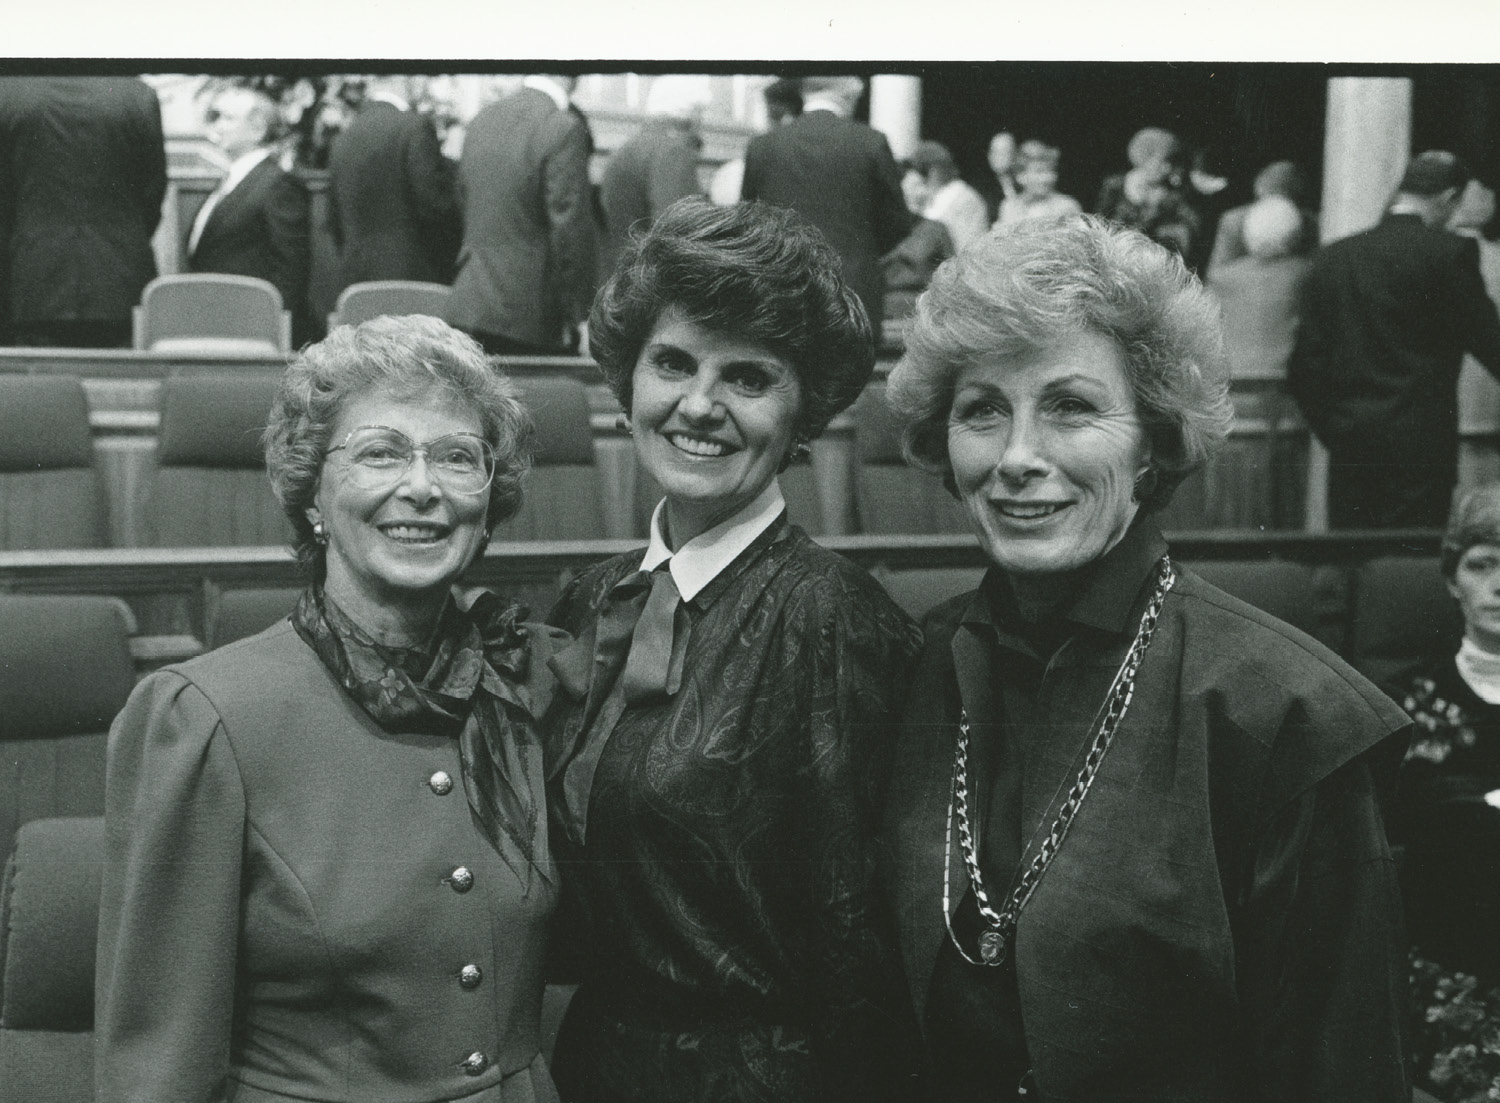 From left to right, Sisters Jayne B. Malan, Ardeth G. Kapp, and Elaine L. Jack of Young Women general presidency in 1989. Sister Kapp served as Young Women general president from 1984 to 1992. This presidency oversaw the creation of the Young Women theme and Young Women values, and they updated the Personal Progress program. Sister Jack was Relief Society general president from 1990 to 1997.